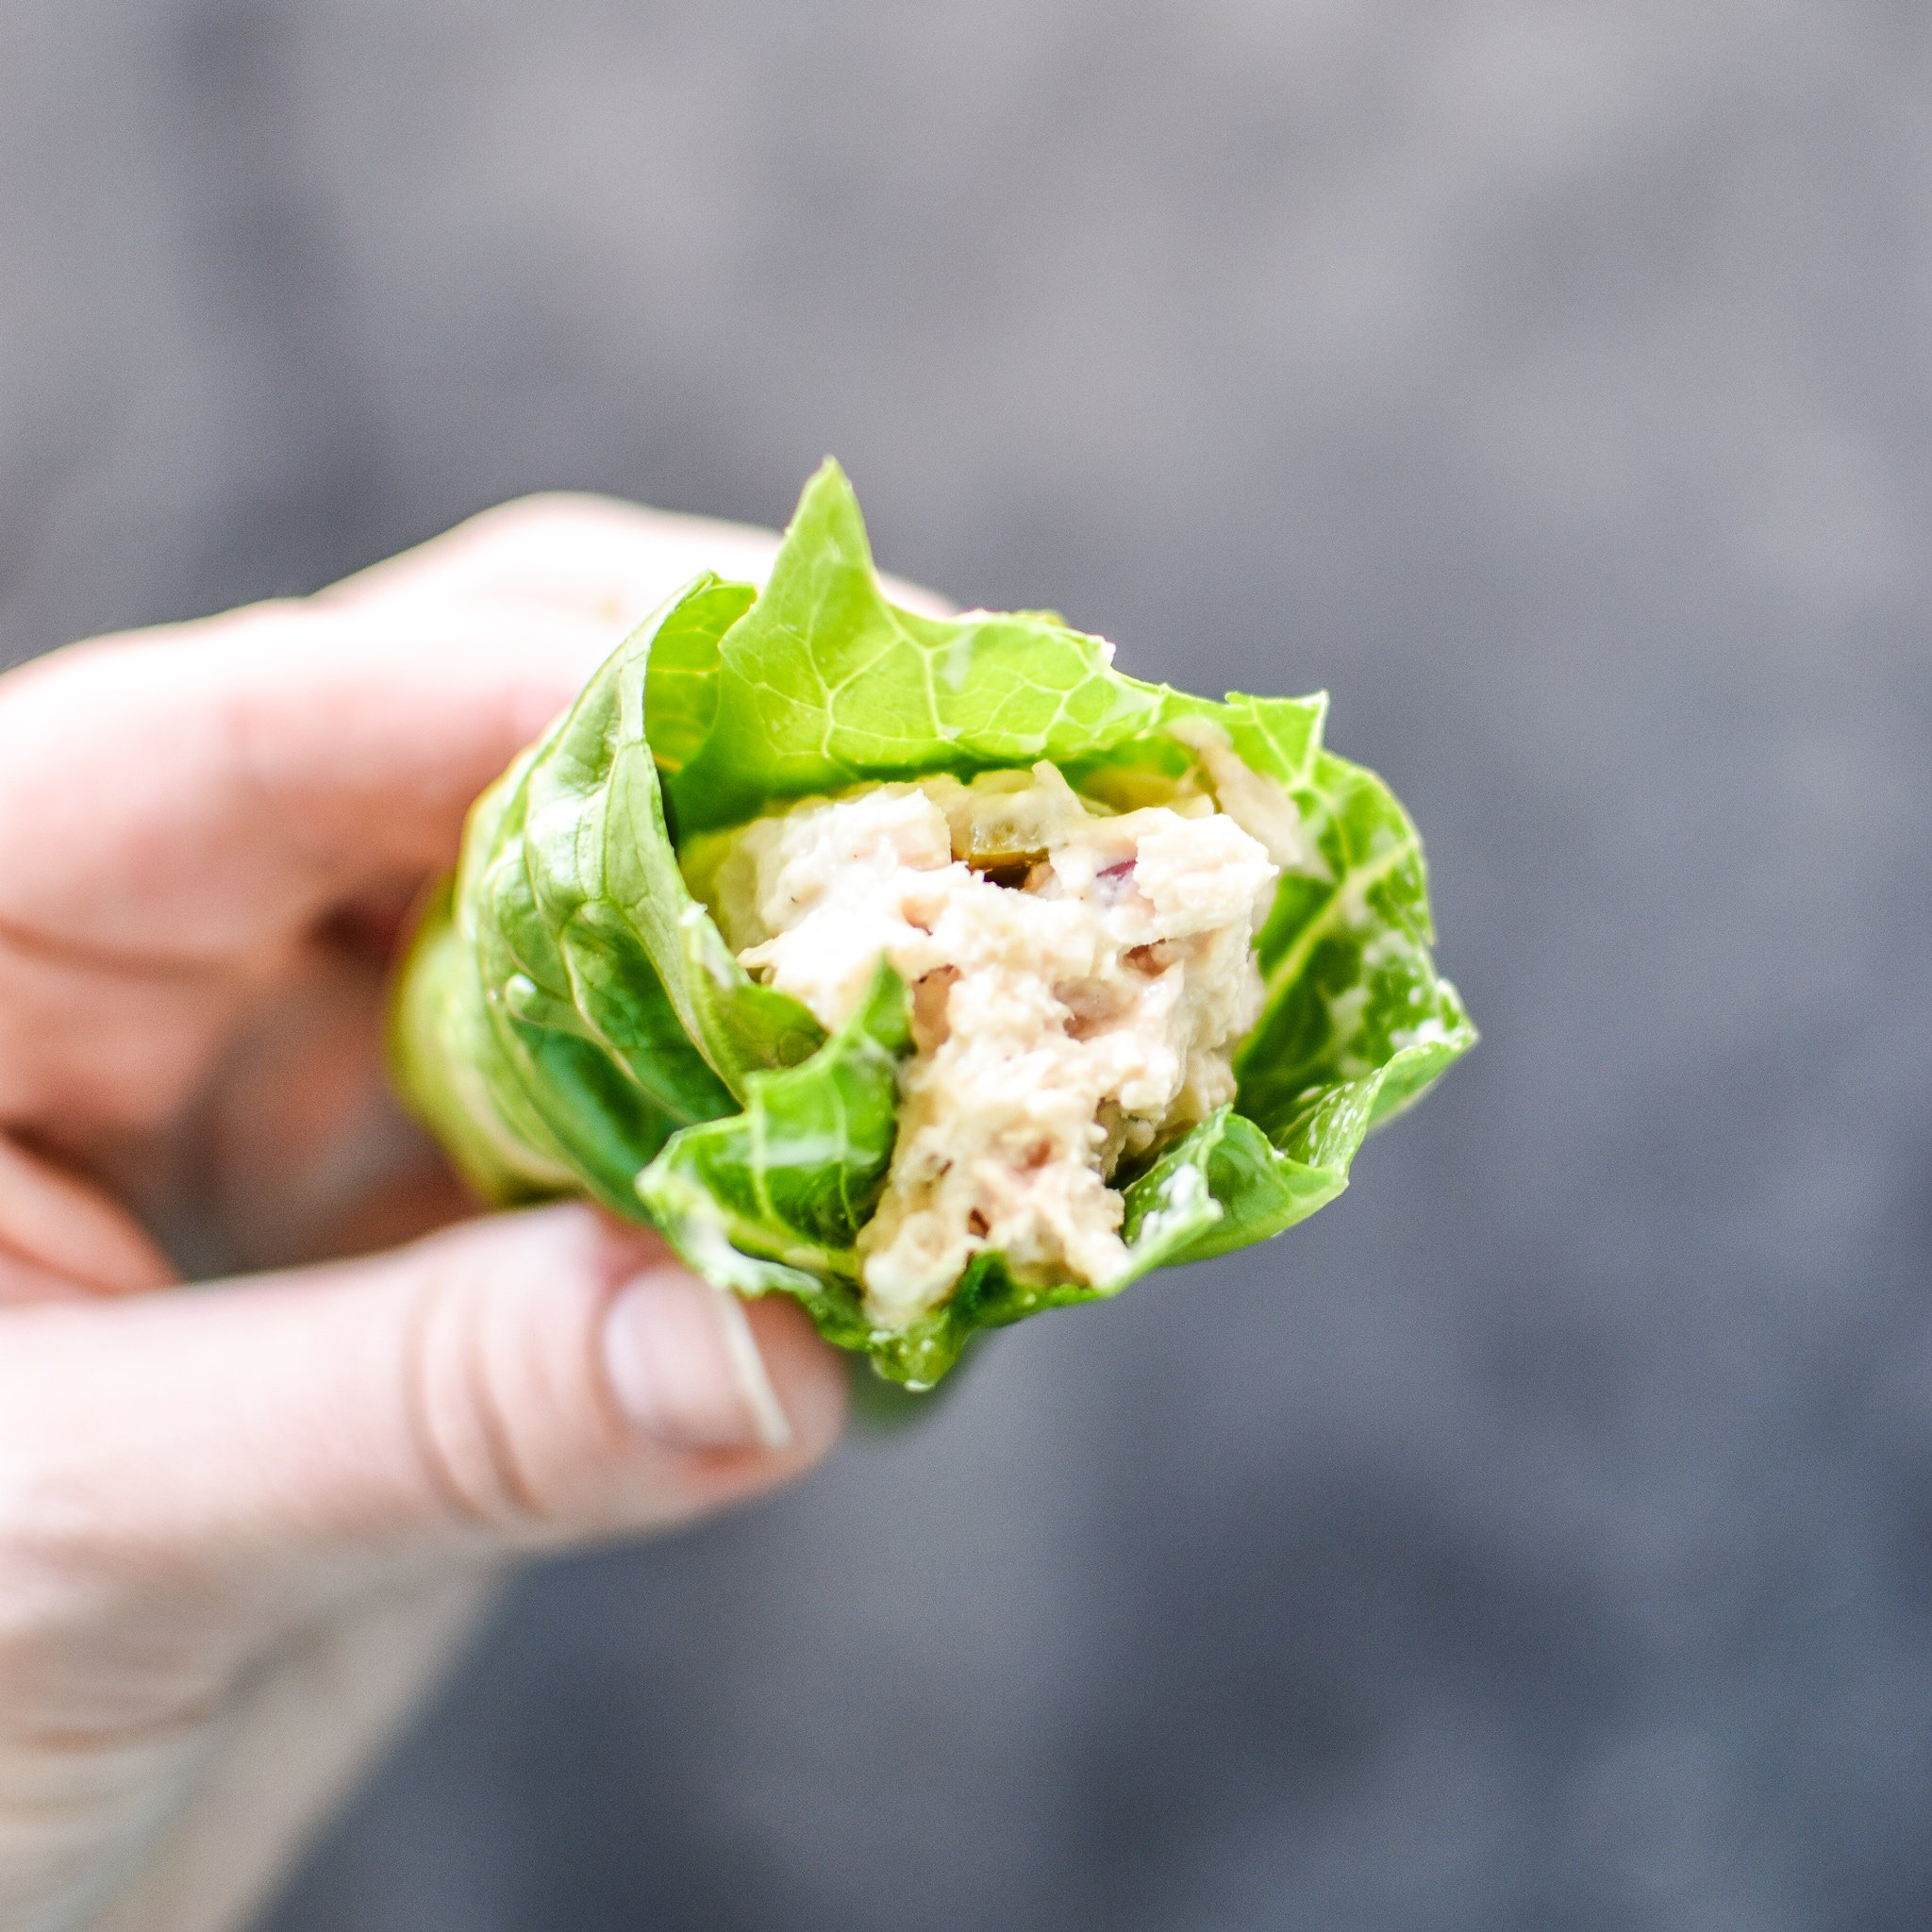 Holding a tuna salad lettuce wrap meal prep item in hand.